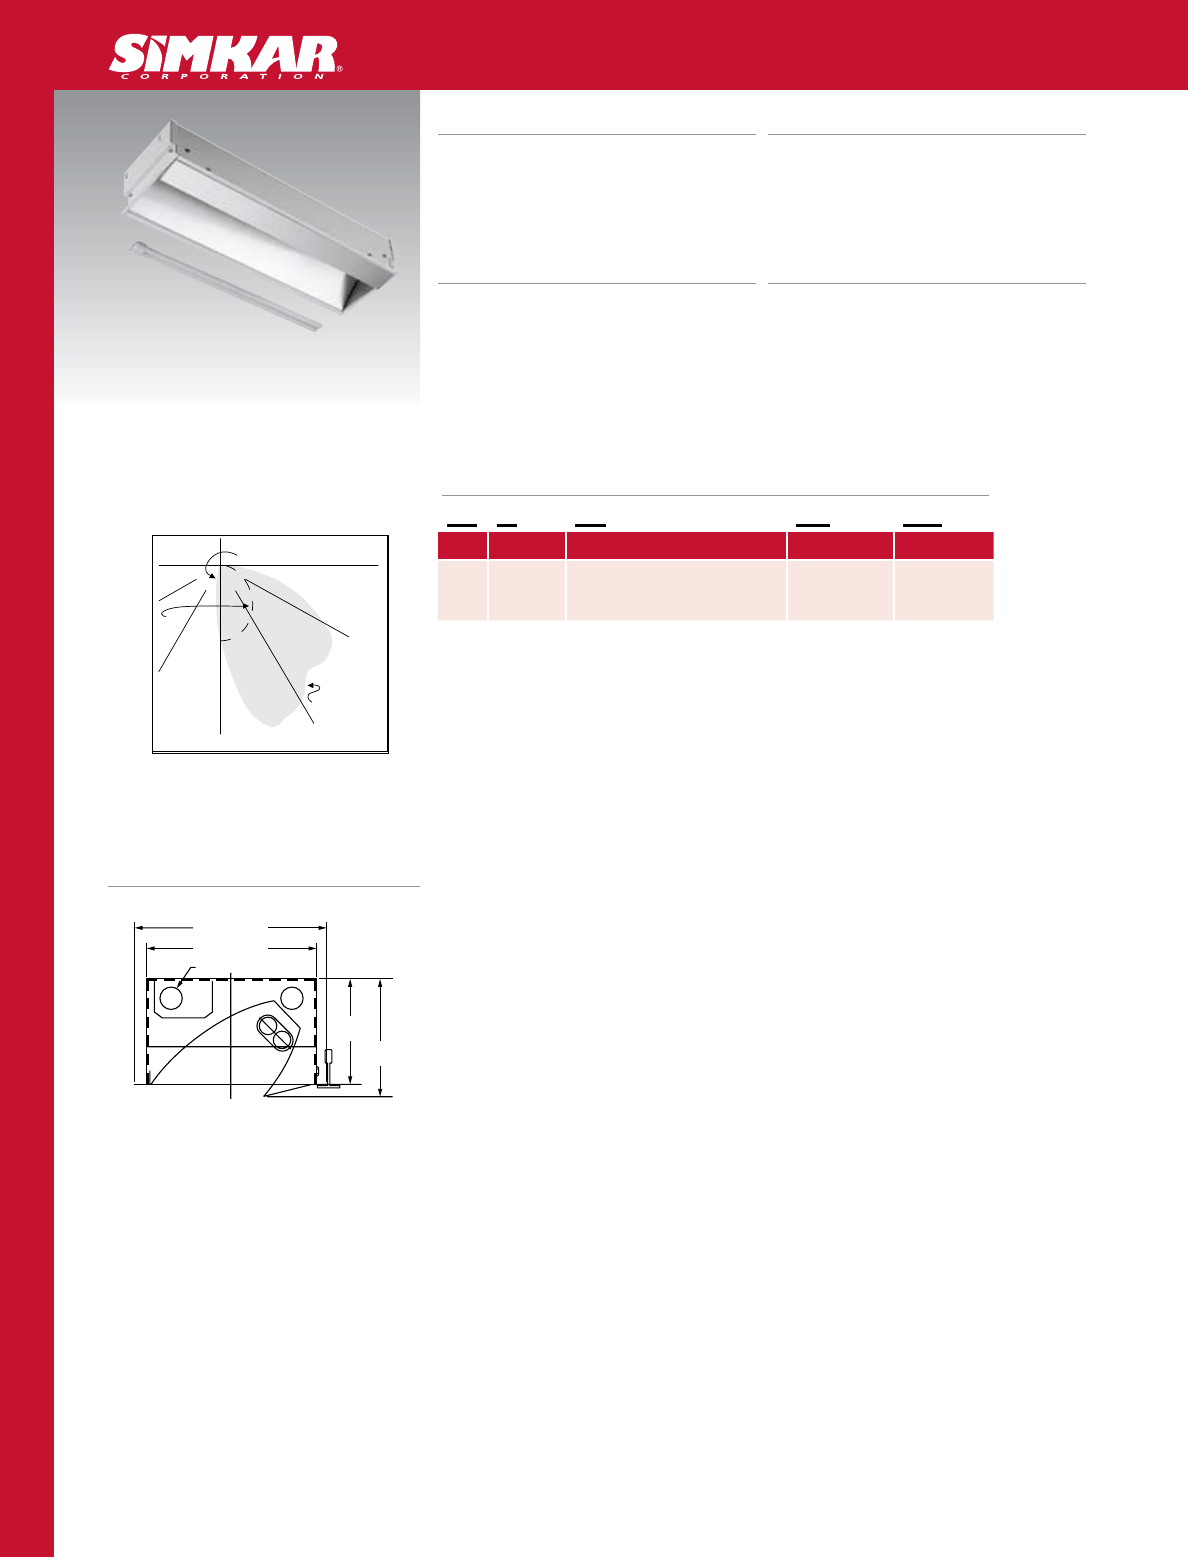 hight resolution of  47188 catalog on sign emergency light installation diagram prolite led exit sign with diagram fluorescent emergency ballast